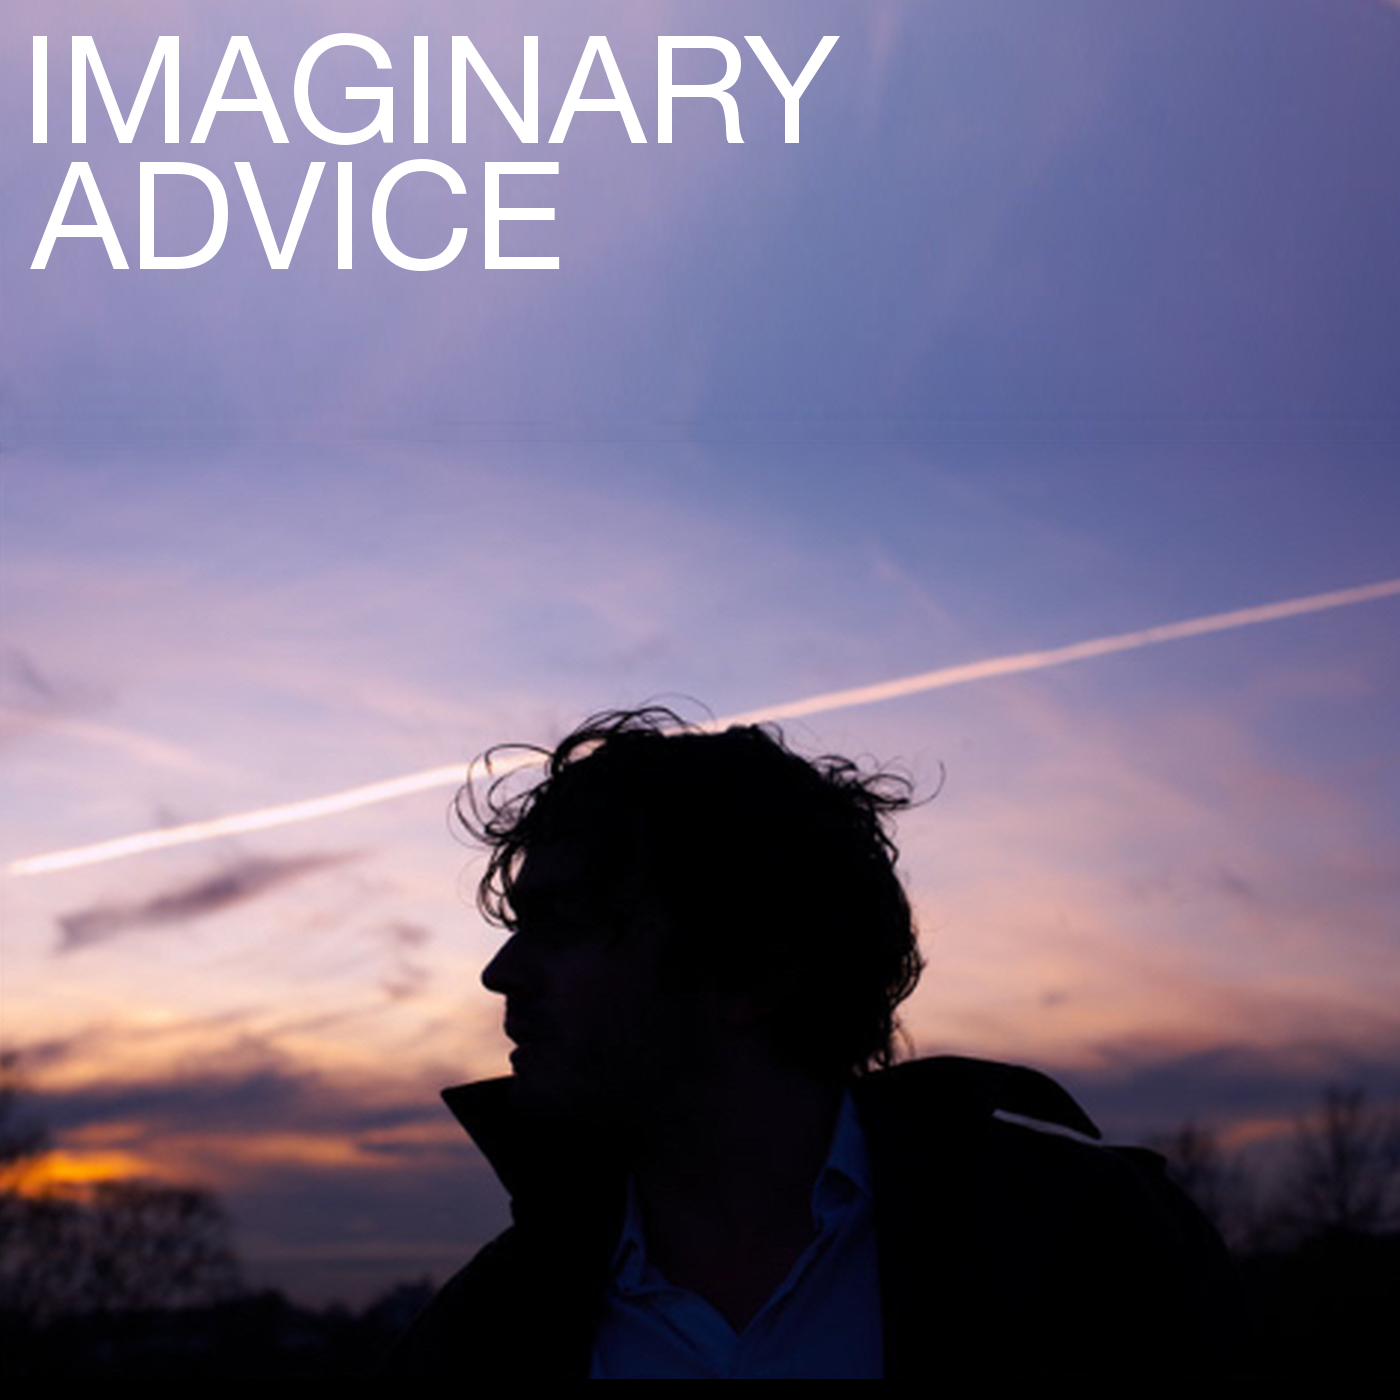 imaginary advice logo NEW.JPG